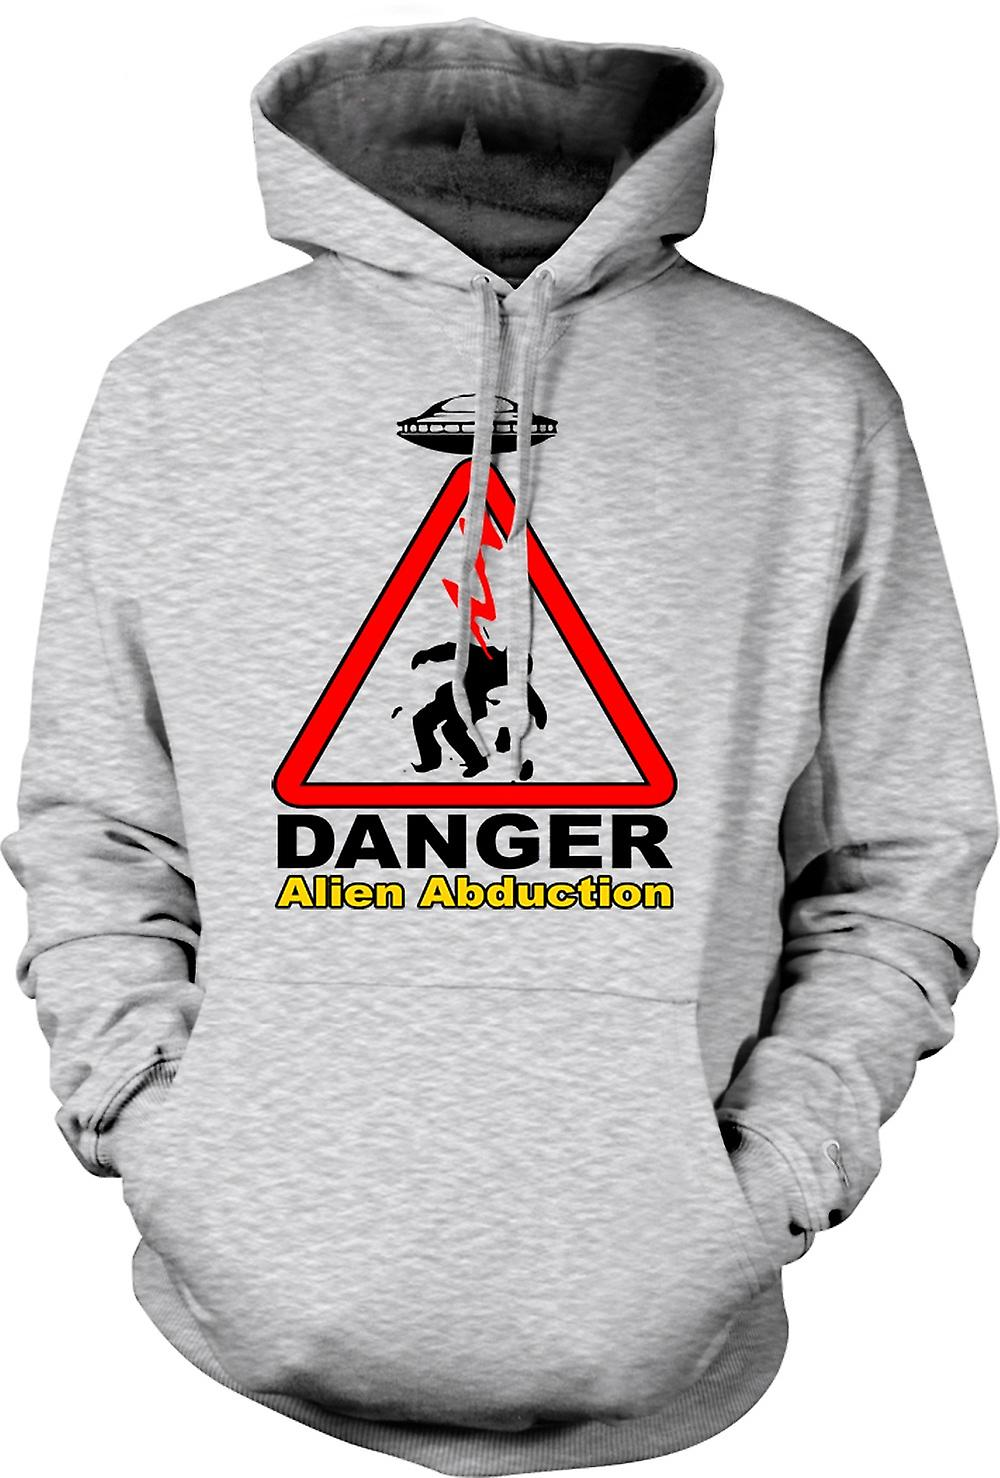 Mens Hoodie - Danger Alien Abduction - UFO - Funny